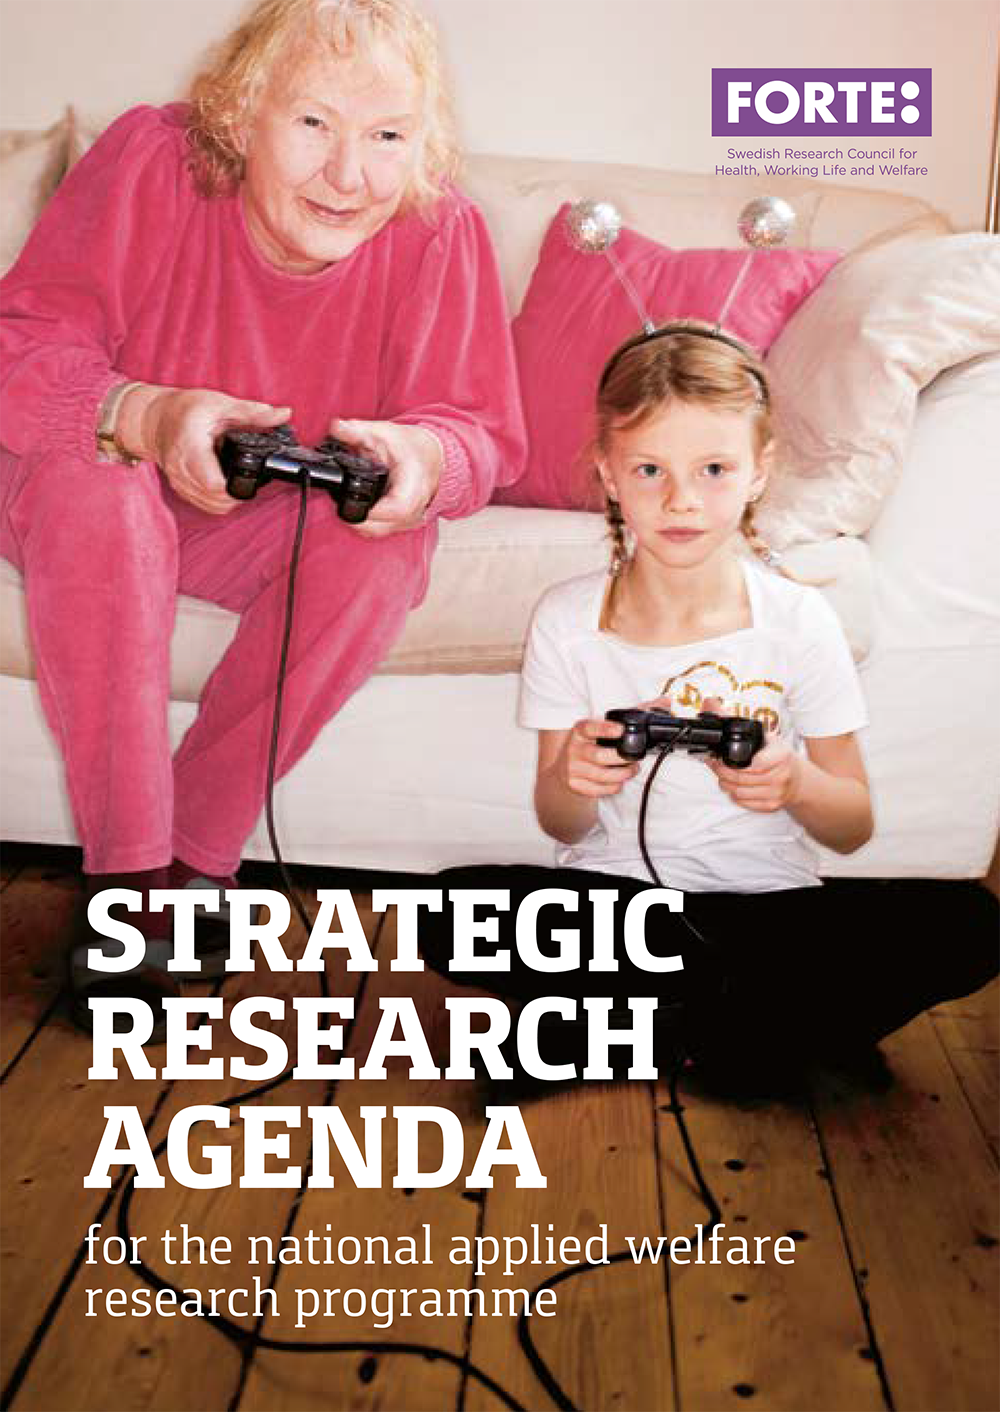 Strategic research agenda for the national applied welfare research programme